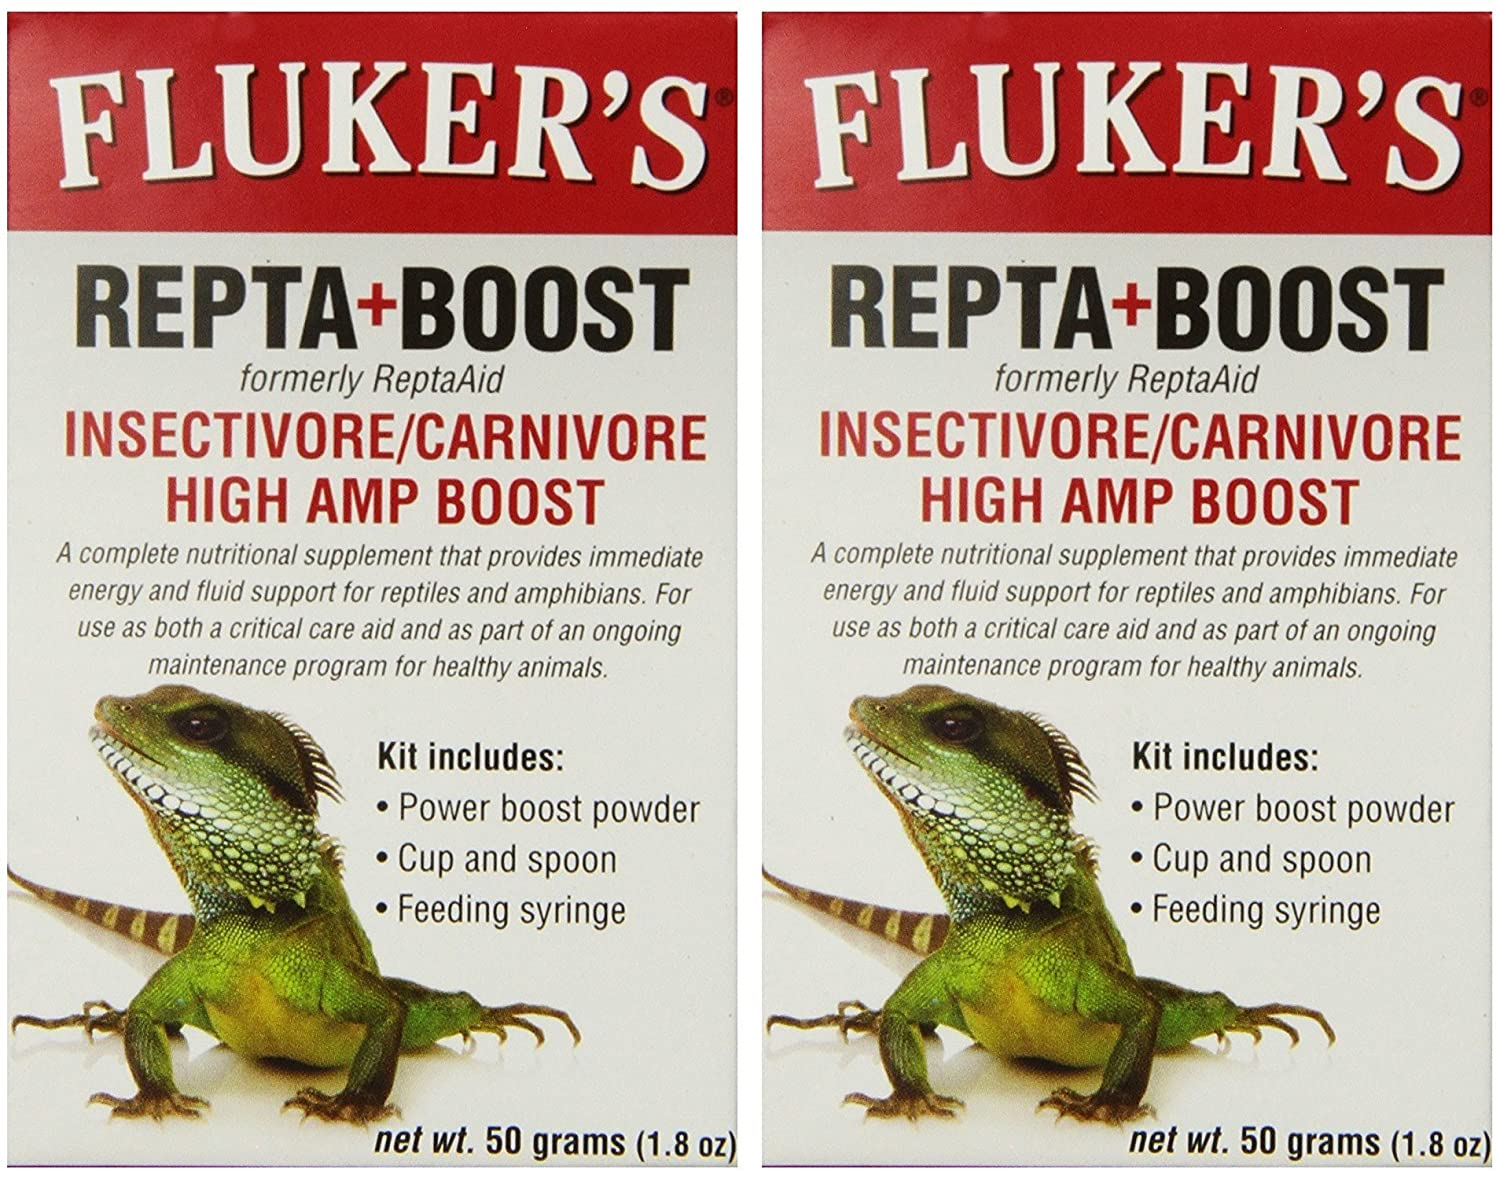 Fluker's Repta+Boost Insectivore & Carnivore High Amp Boost 50gm TopDawg Pet Supply 919041